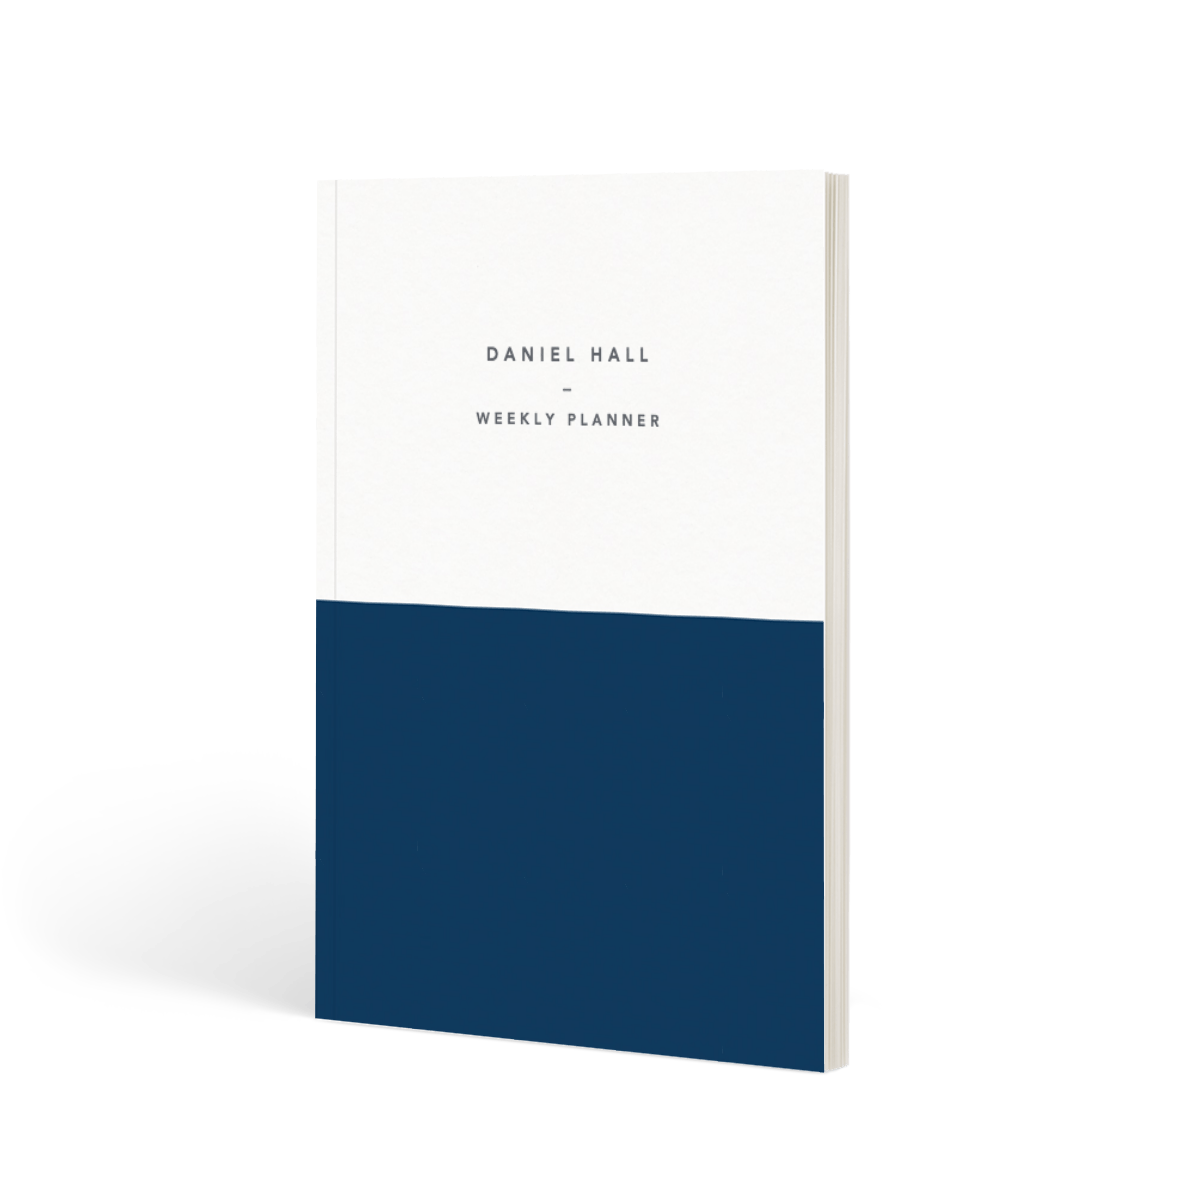 Https%3a%2f%2fwww.papier.com%2fproduct image%2f36157%2f7%2fdemi navy 9080 front 1523907647.png?ixlib=rb 1.1